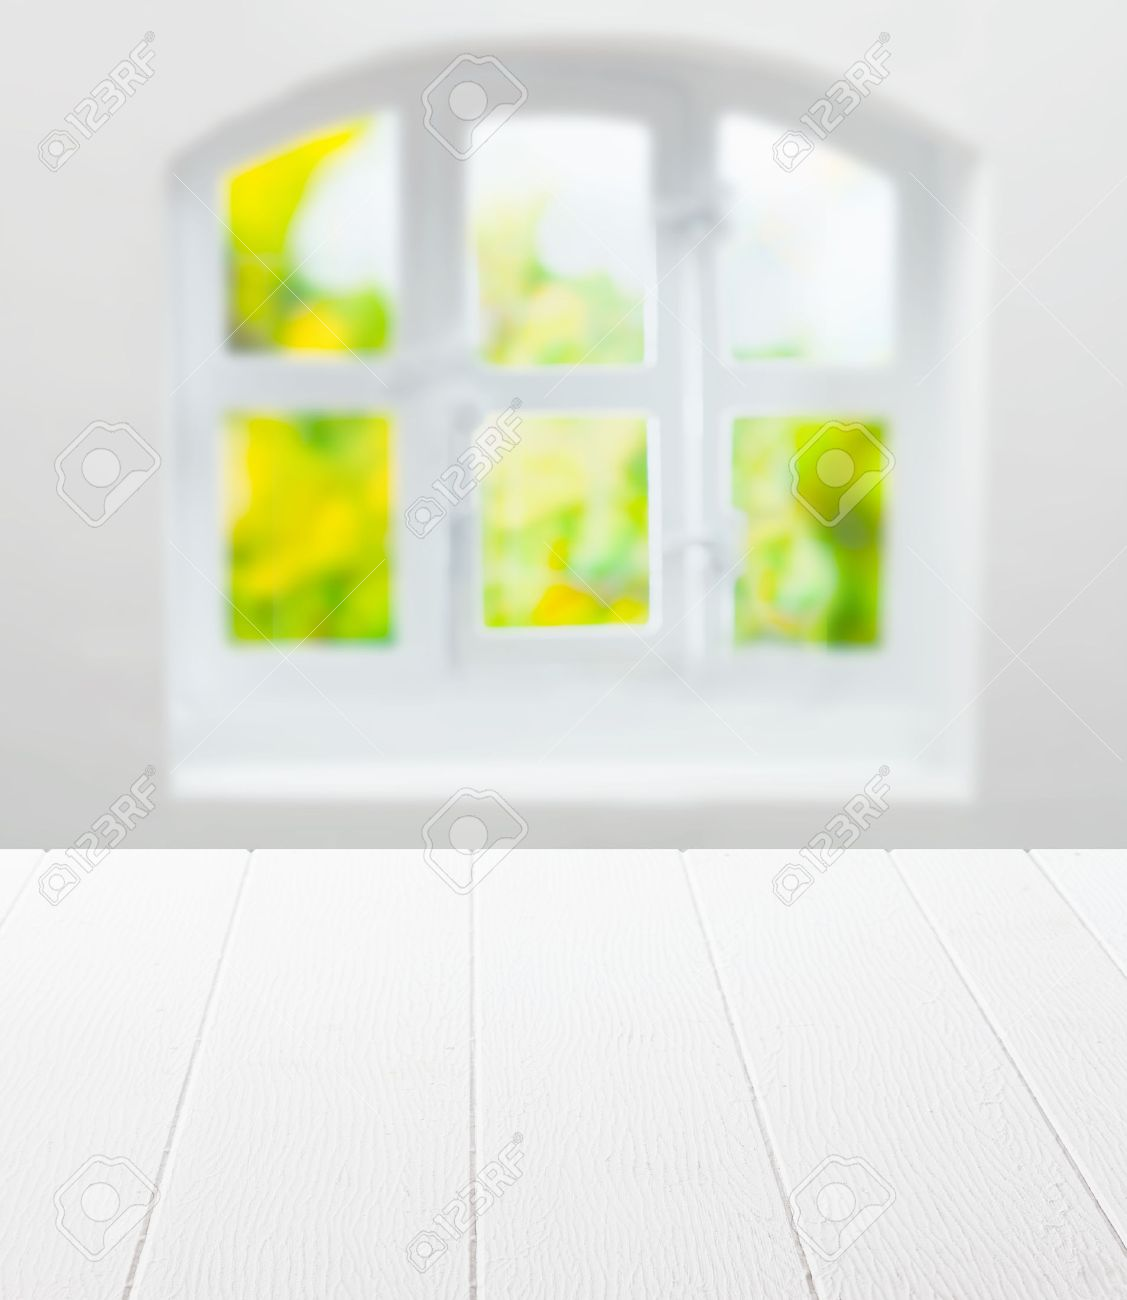 25032179 Empty clean white kitchen table in front of a cottage pane arched window with a view of greenery in  Stock Photo